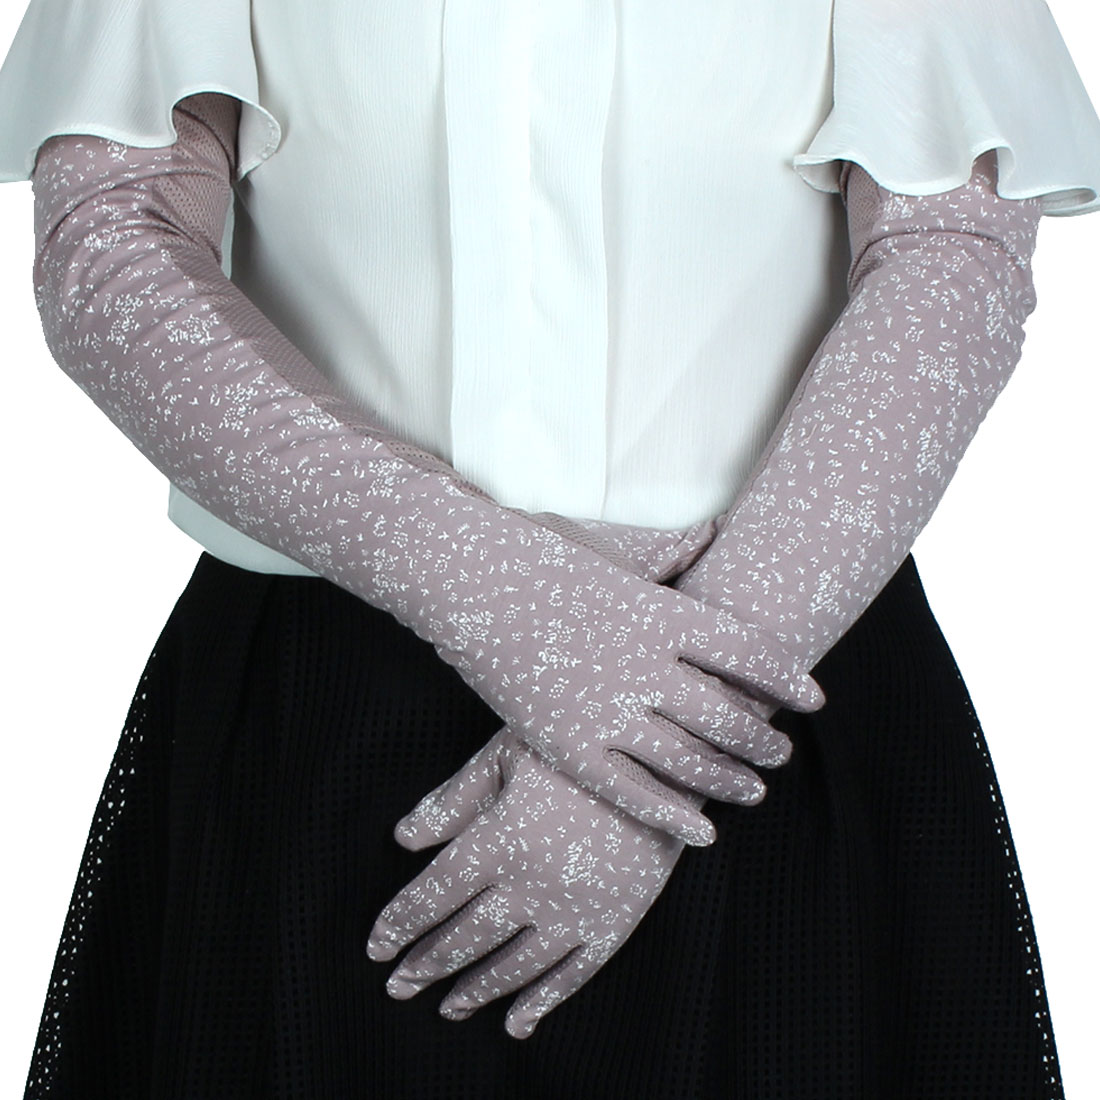 Lady Driving Arm Sleeves Full Finger Mittens Sun Resistant Gloves Purple Pair - image 2 of 2